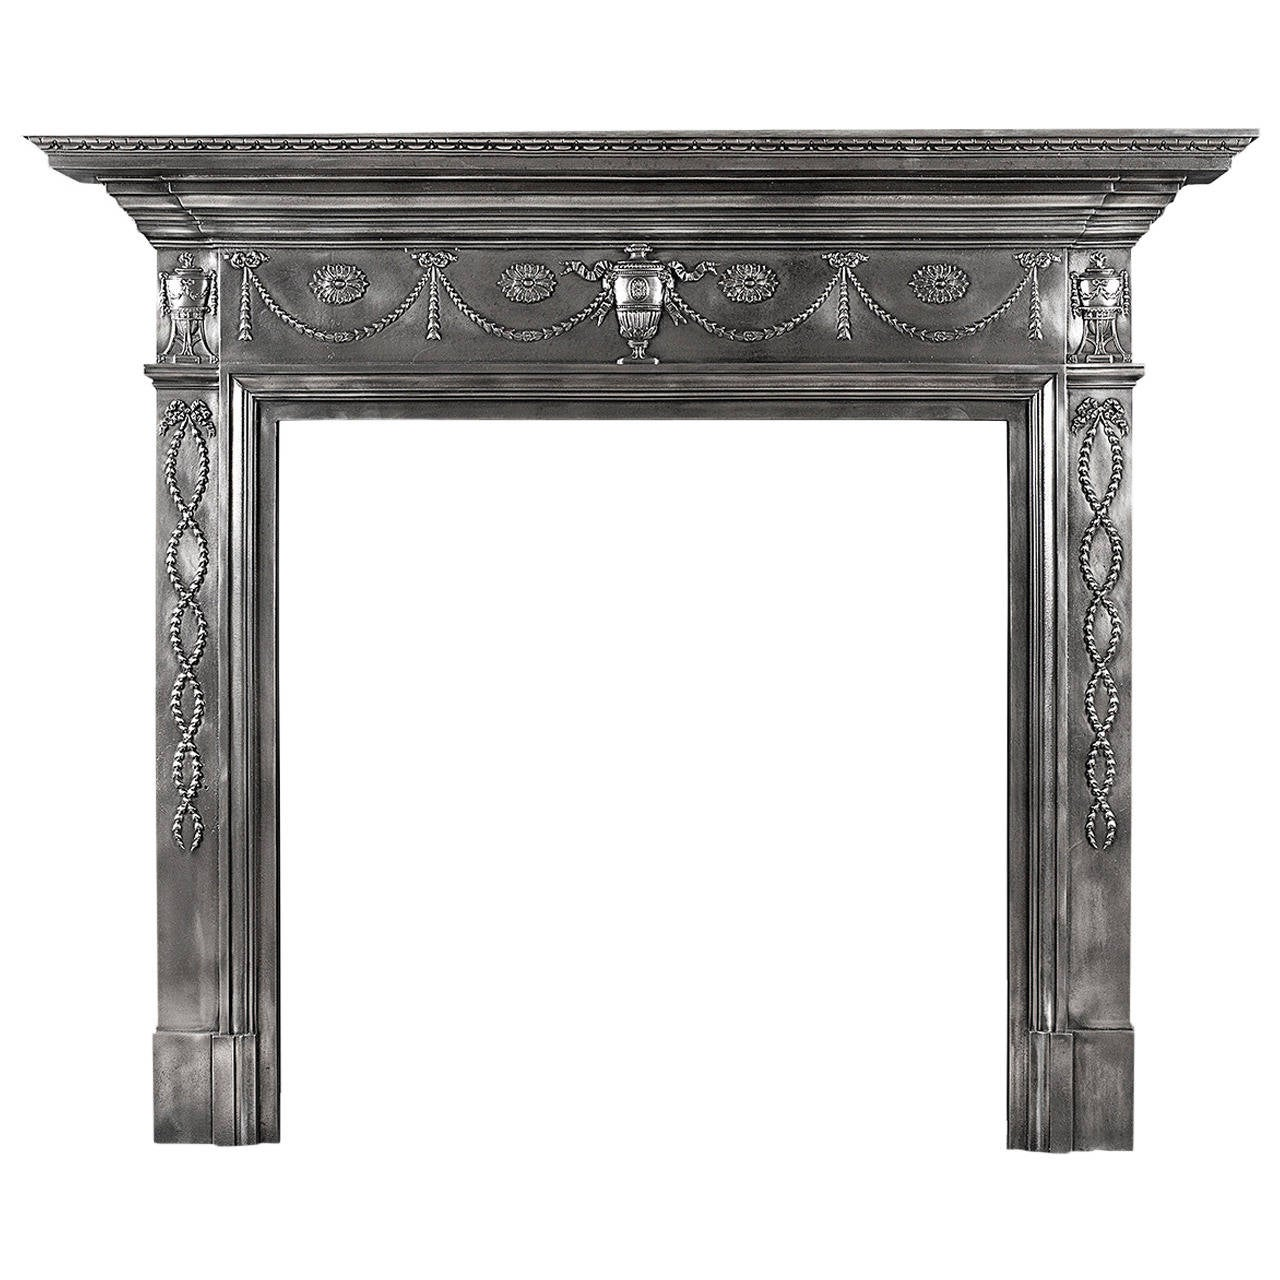 a 19th century polished cast iron fireplace mantel in the adam